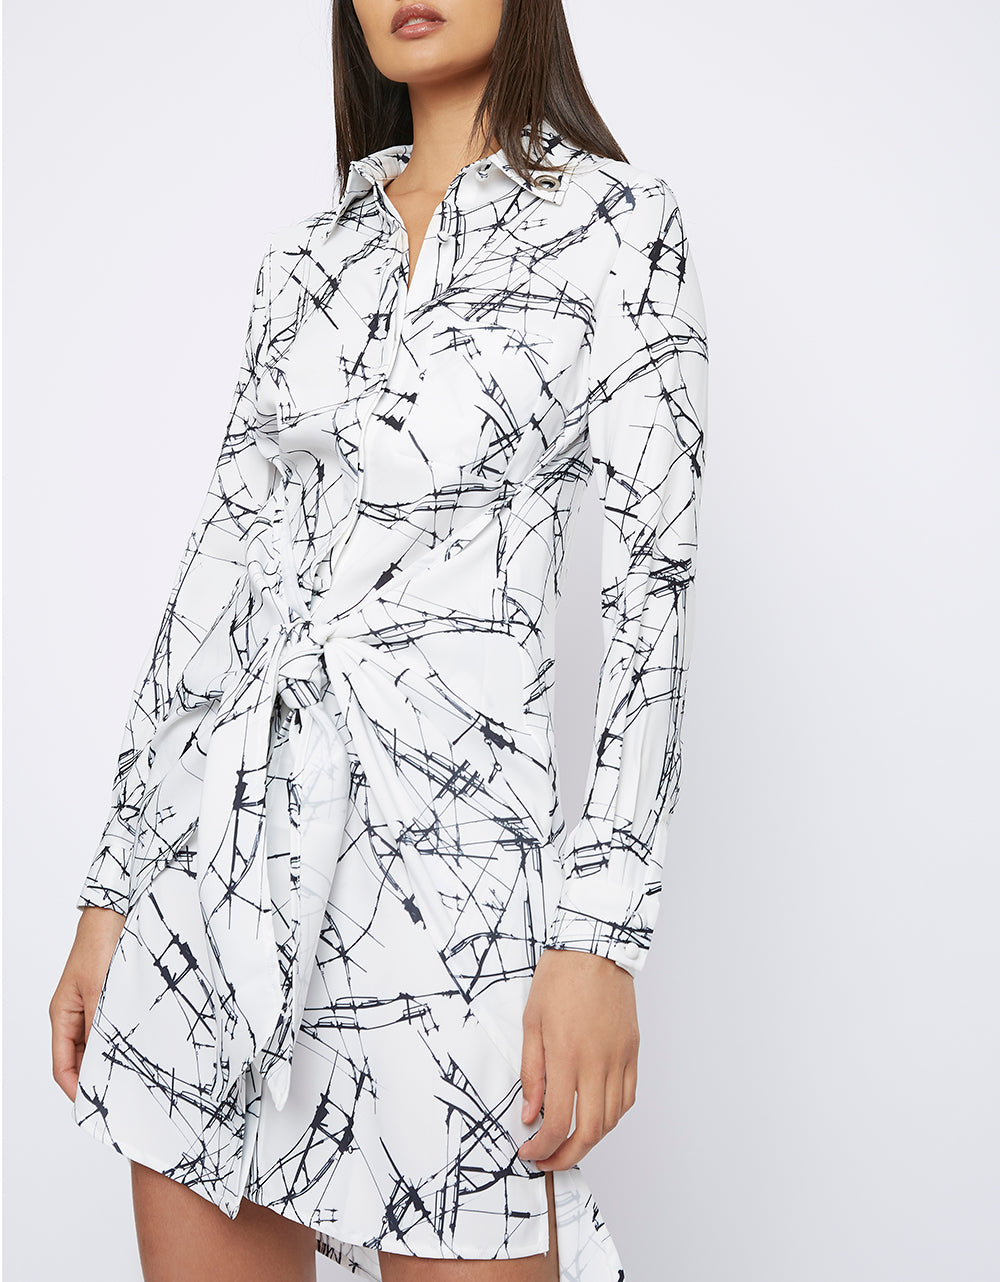 The 'SPOKE' Shirt Dress